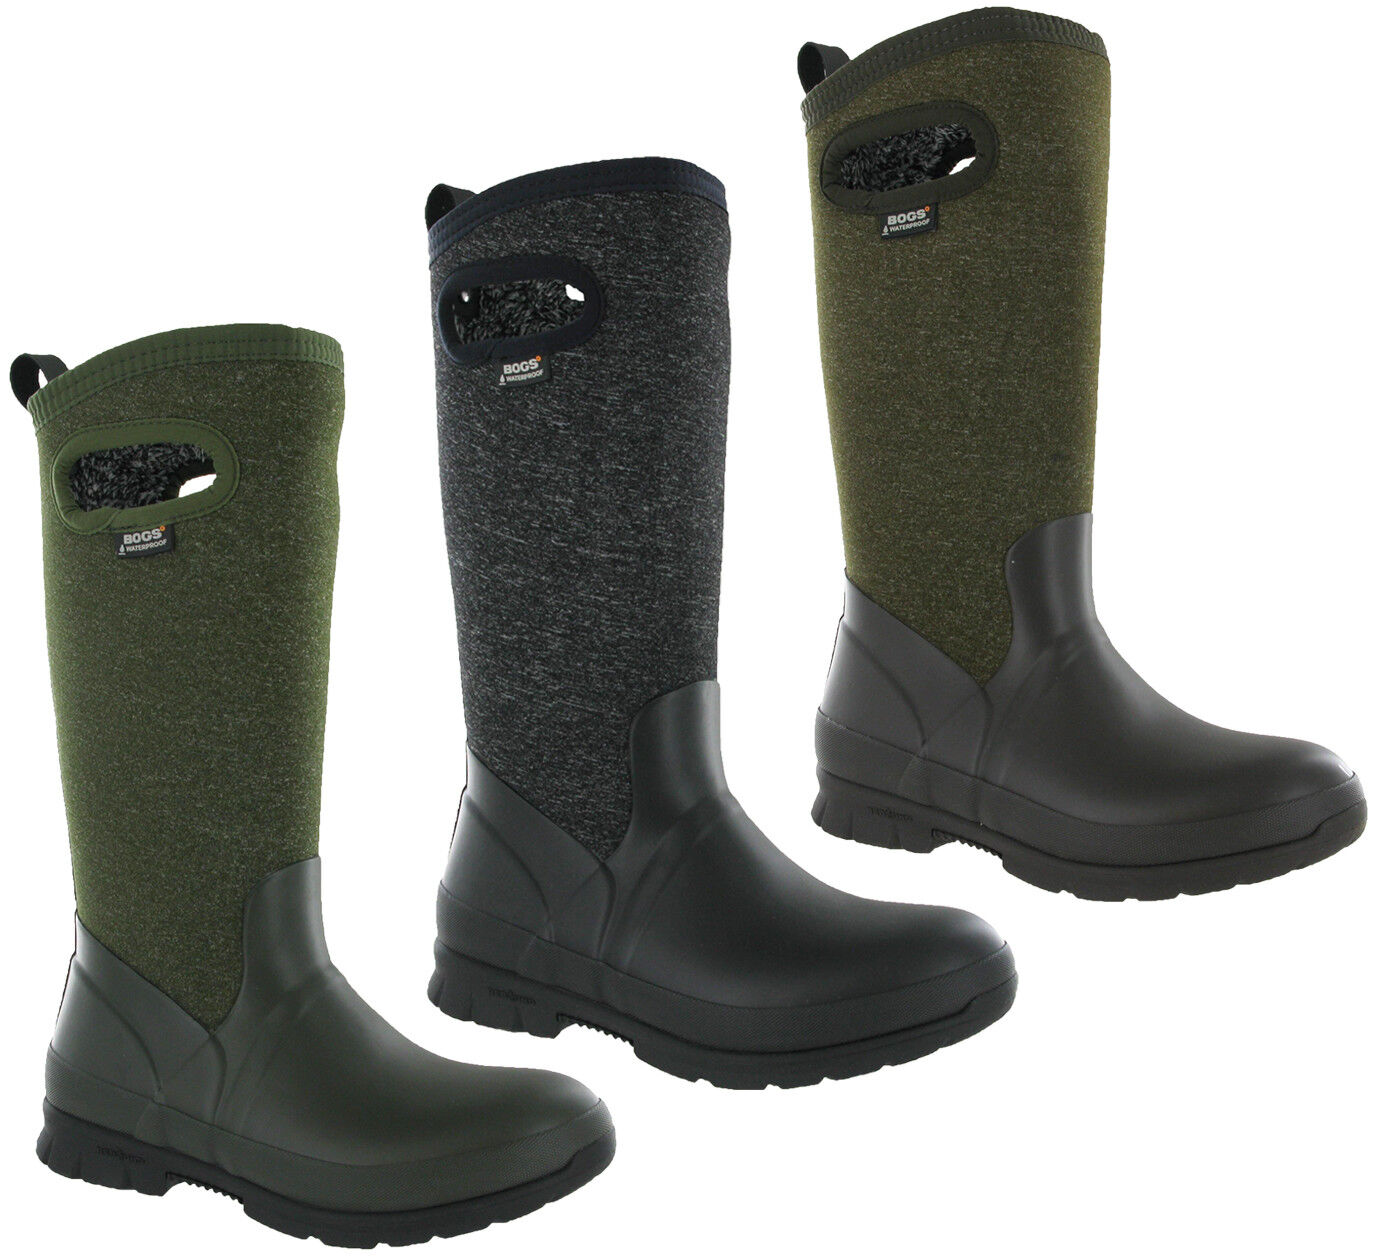 BOGS Crandall Wellingtons  Boots Womens Fur Lined Waterproof Winter - 25c 72036  outlet online store